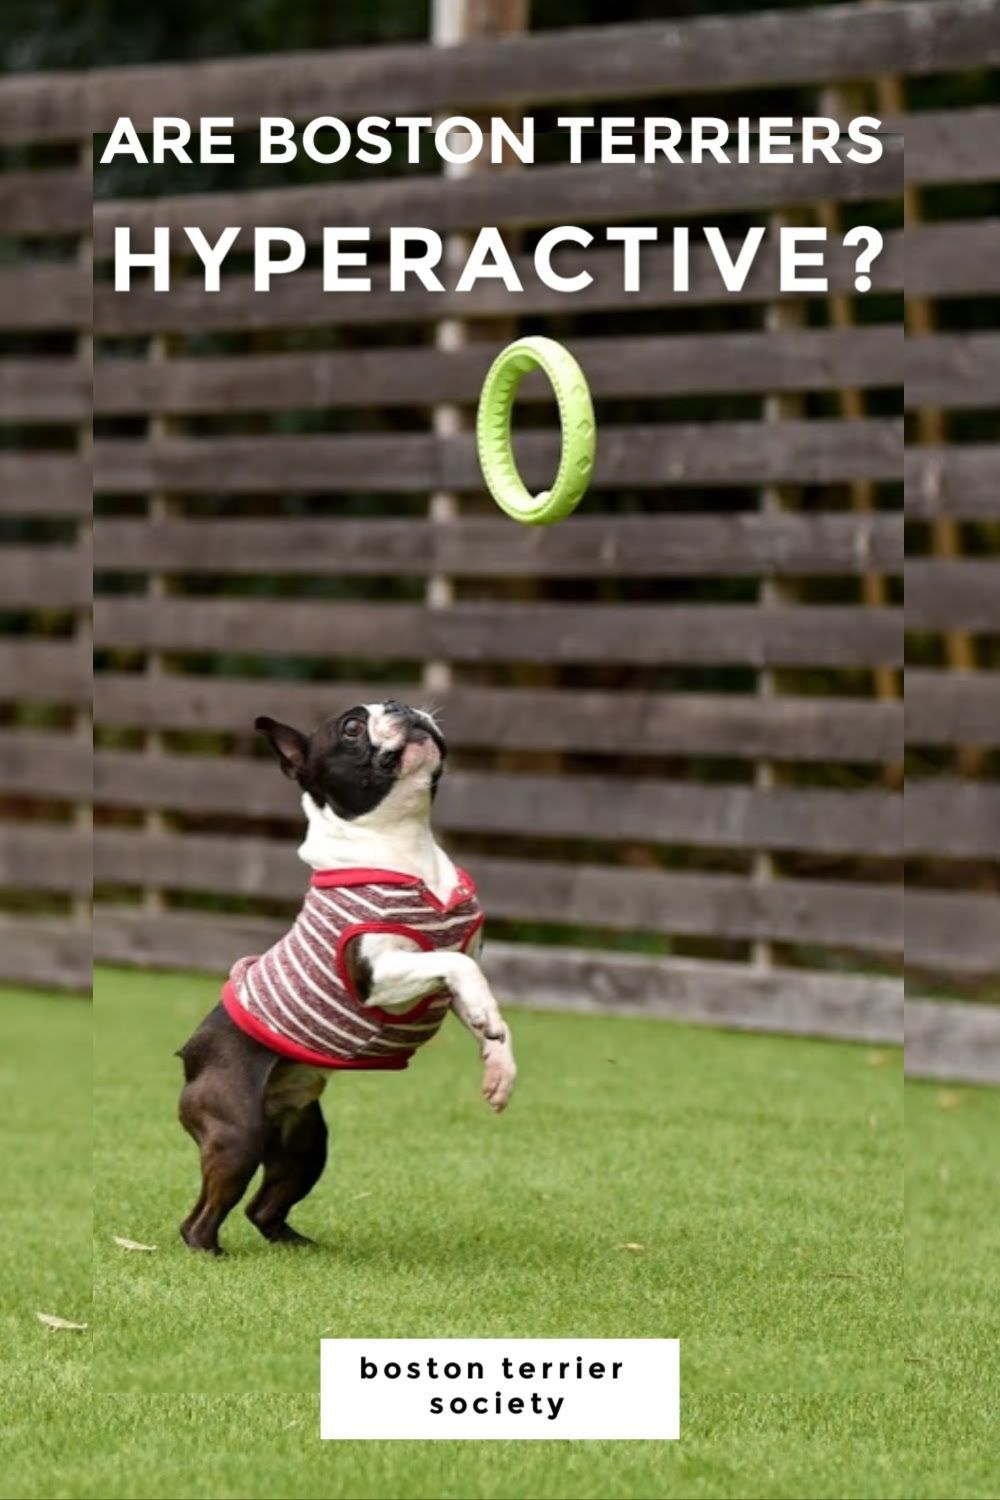 46++ Boston terrier breed health issues trends